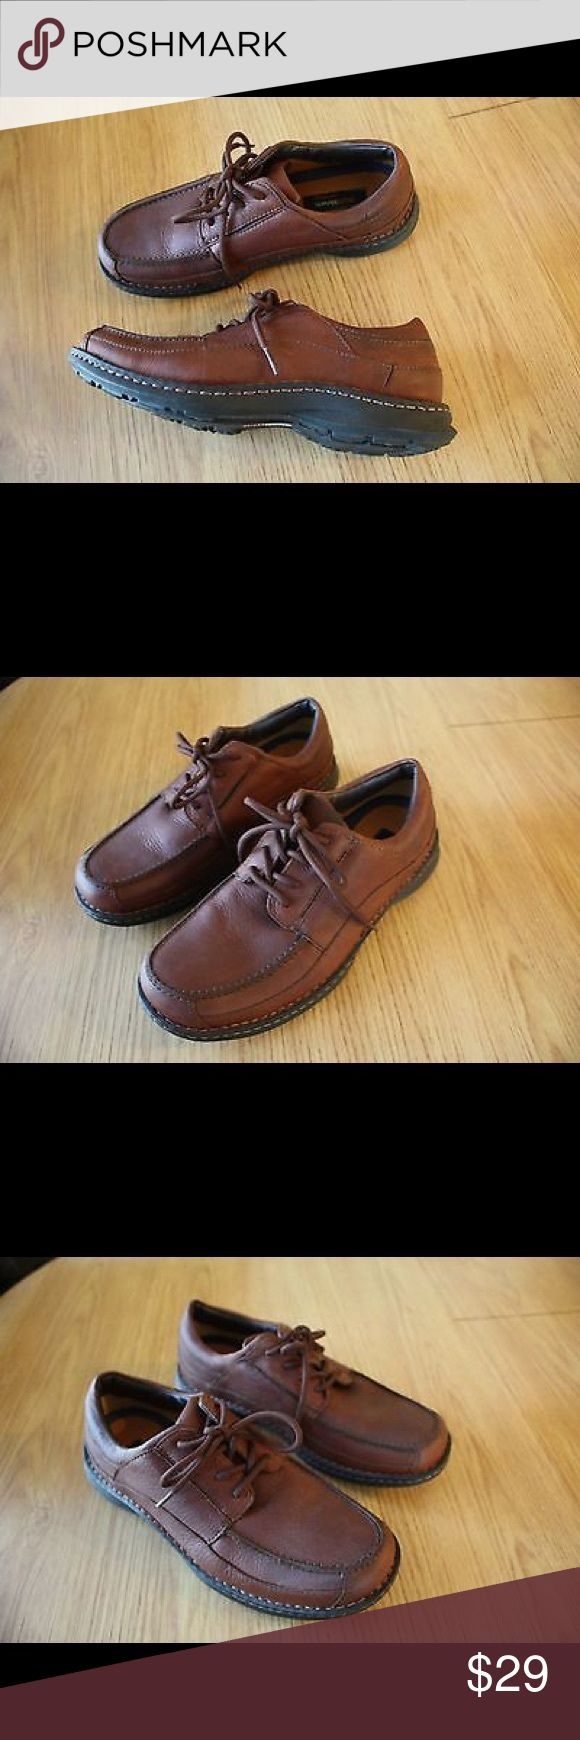 Ruff Hewn Mens Nubuck Water Proof Leather Oxfords Pre-Owned Ruff Hewn Men's Size 10 M Brown Nubuck Water Proof Leather Oxfords Sn: 94-86989  Great Condition, Minimal Wear on Soles, Minimal Scuffing / Wear of Upper, see photos for details. Ruff Hewn Shoes Oxfords & Derbys